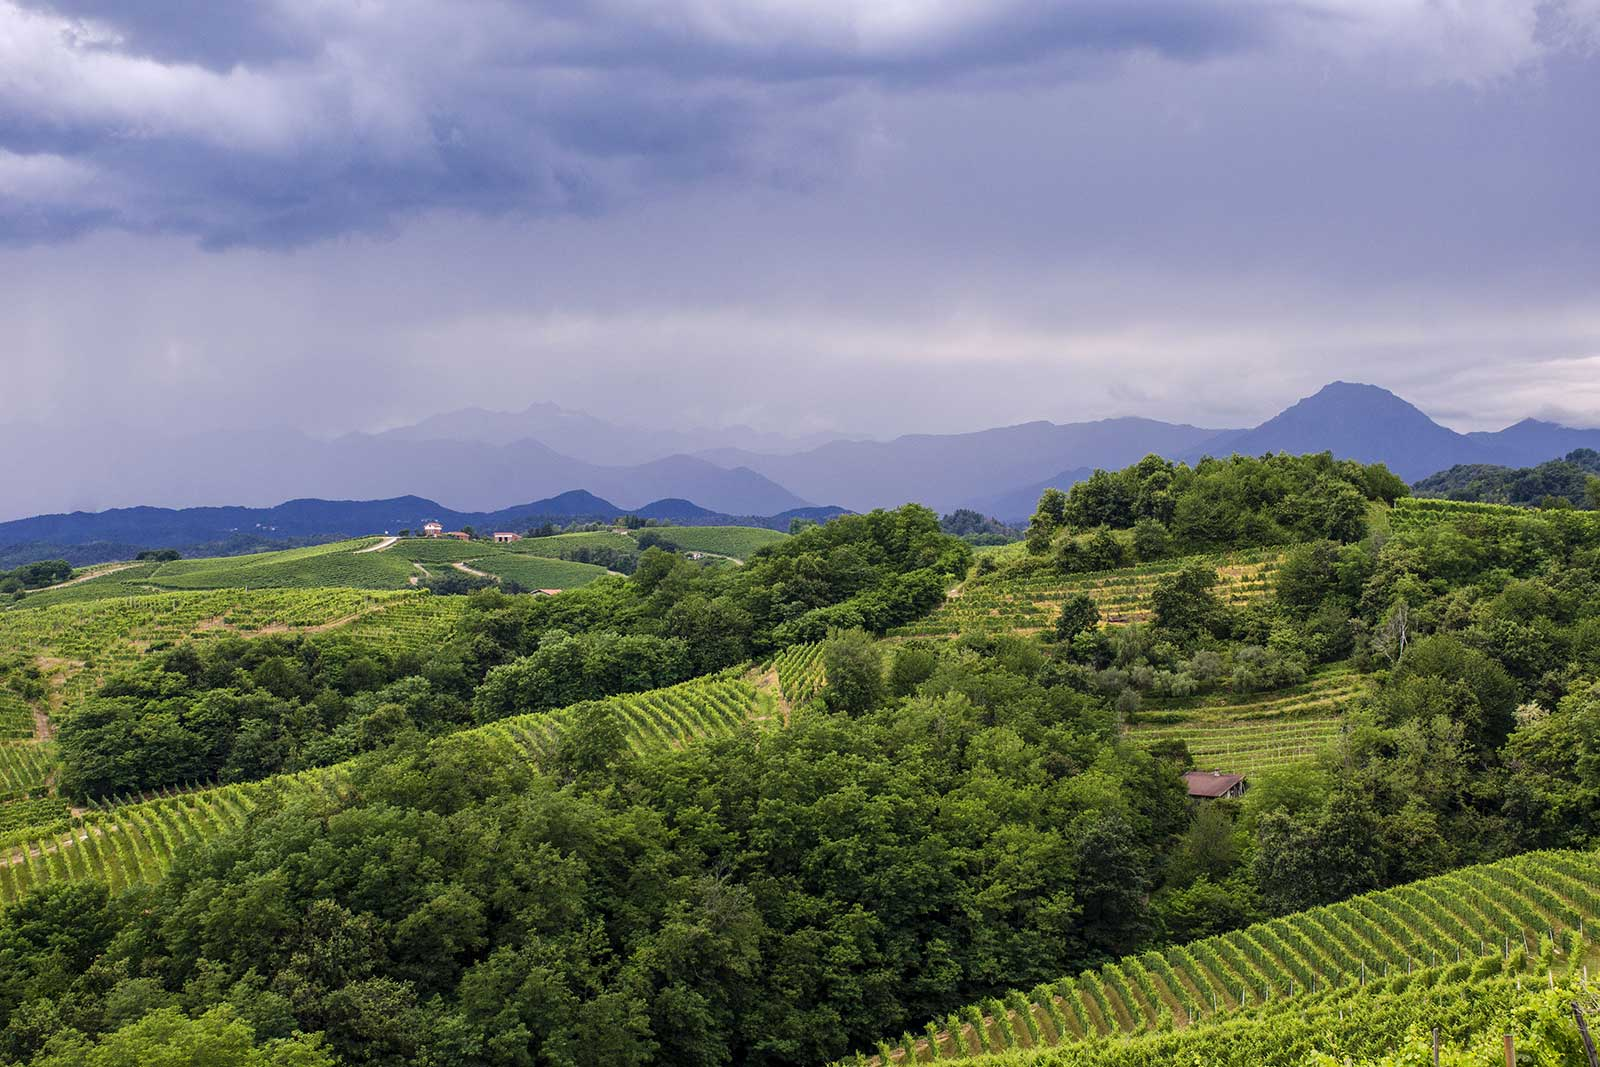 The rolling hills of Alto Piemonte with the Italian Alps in the distance. (Stock photo)